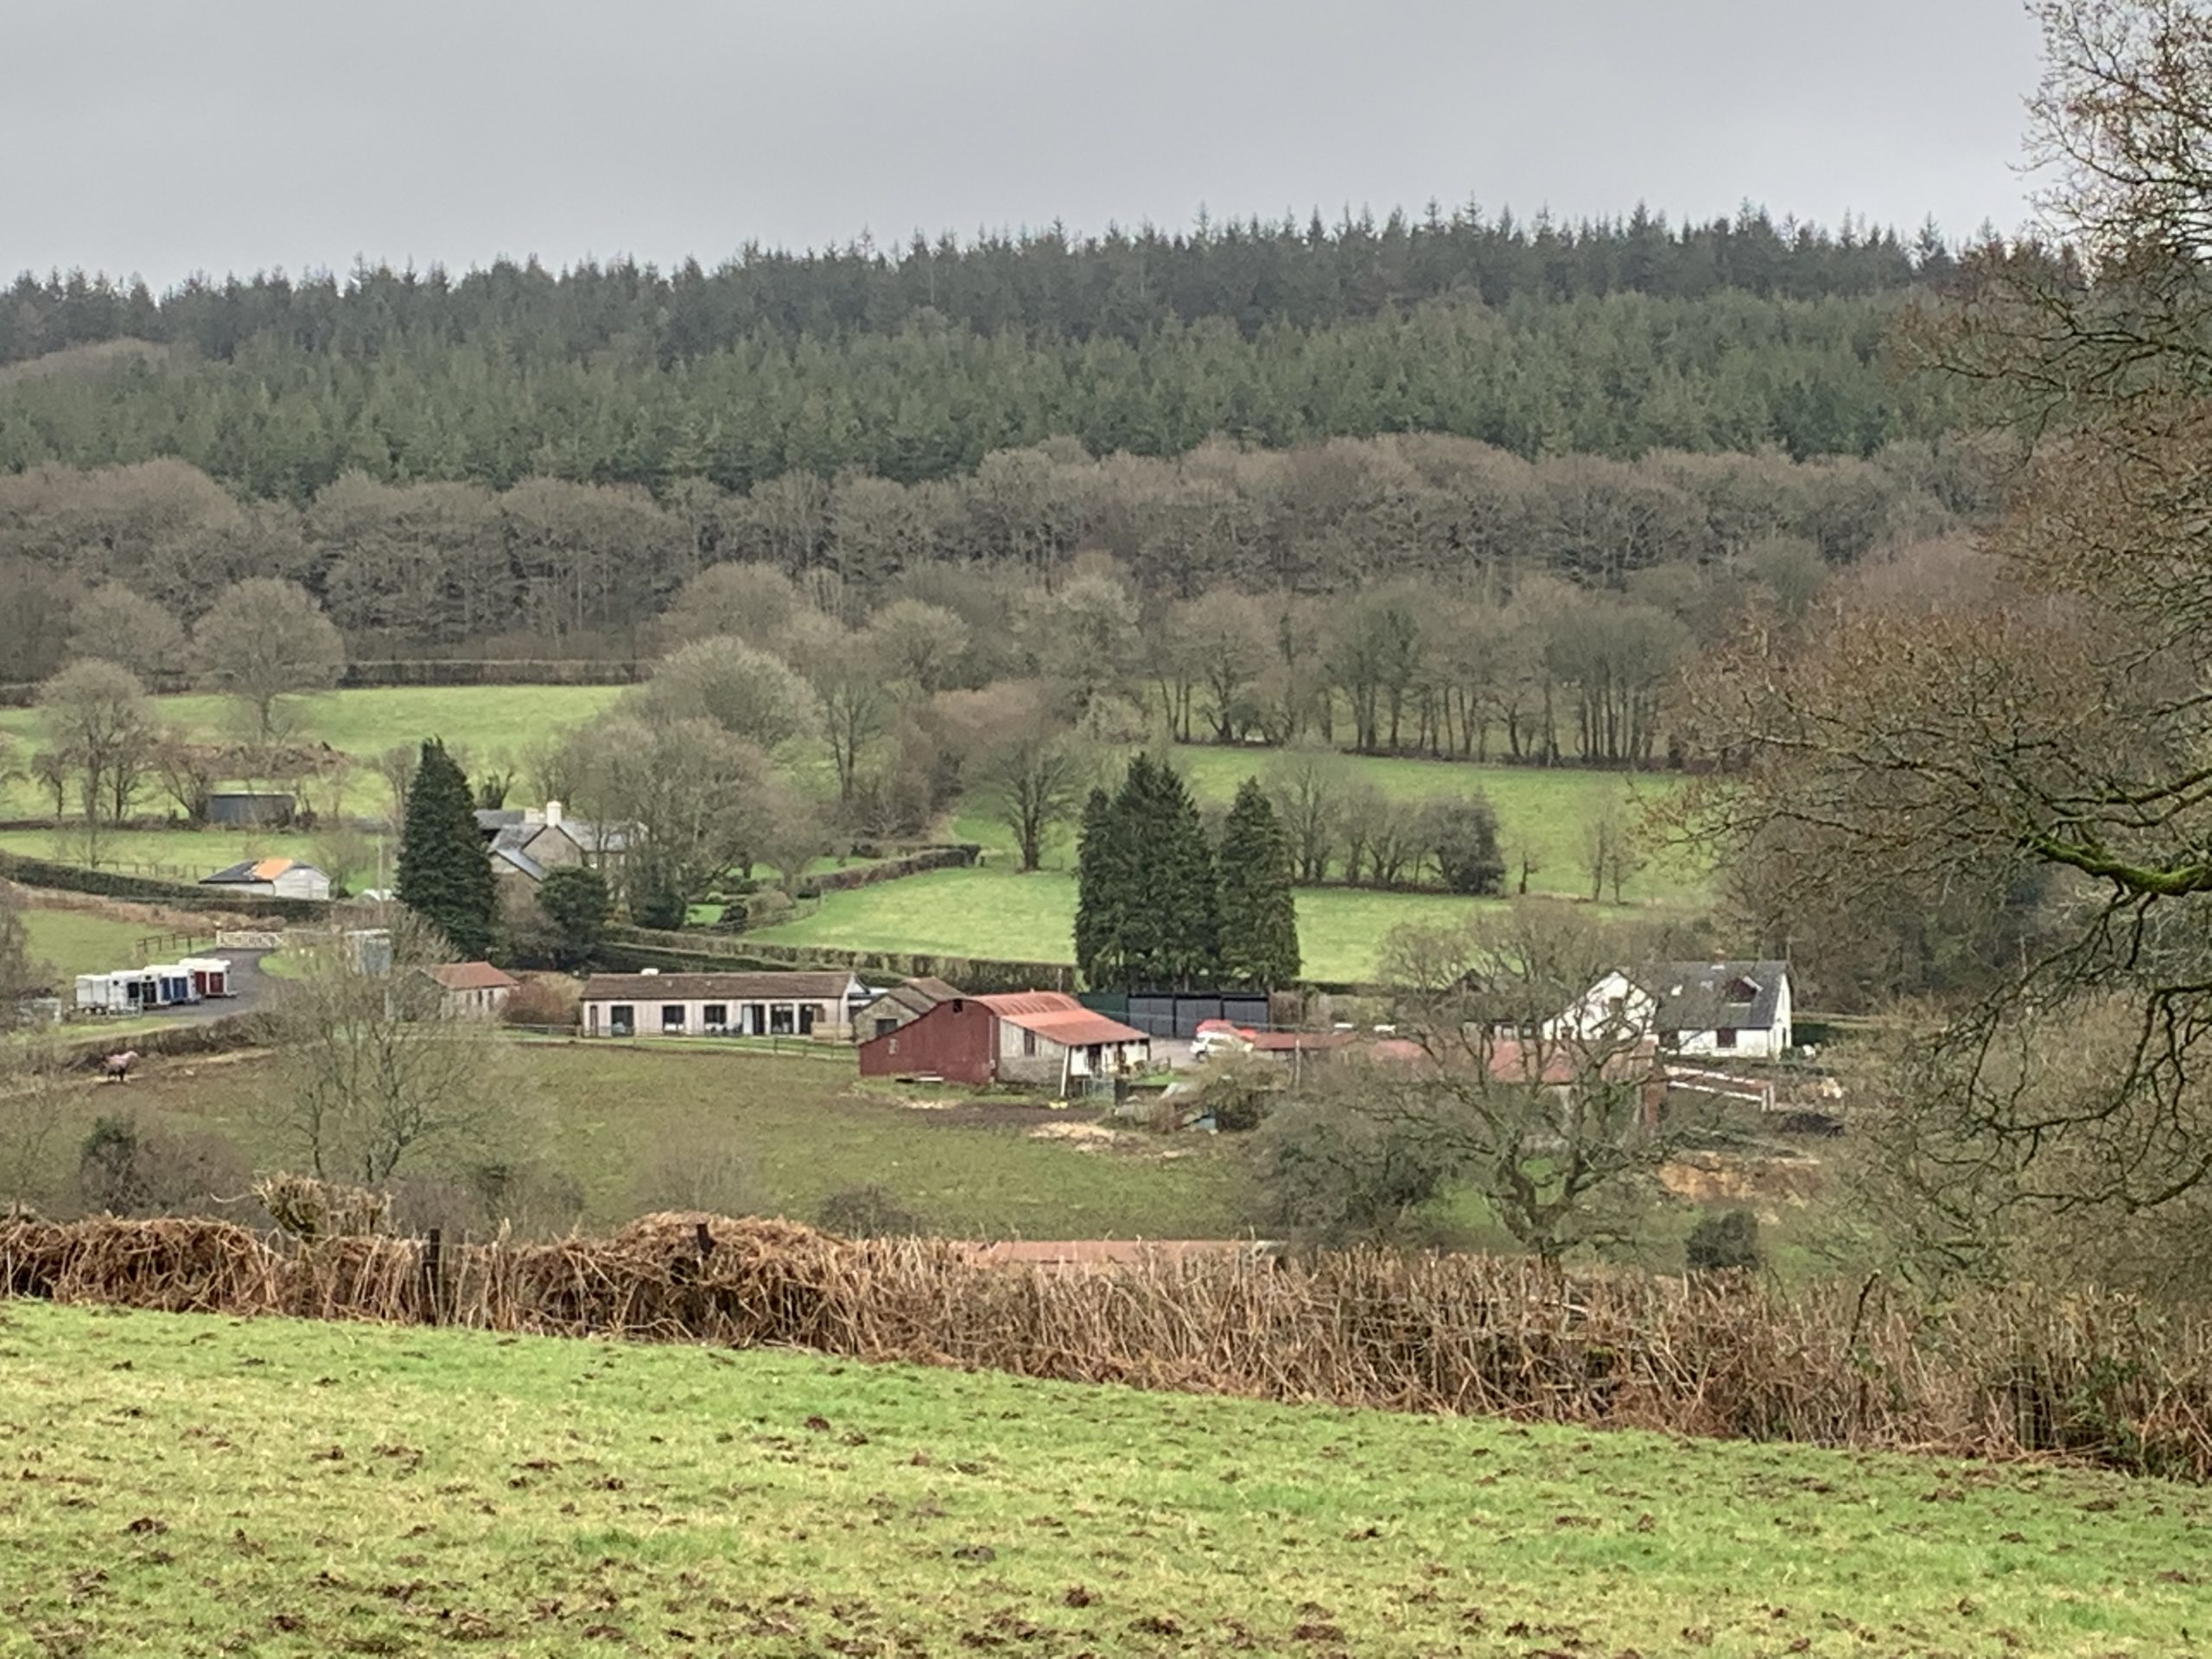 Sugarloaf and Blorenge holiday cottages under construction